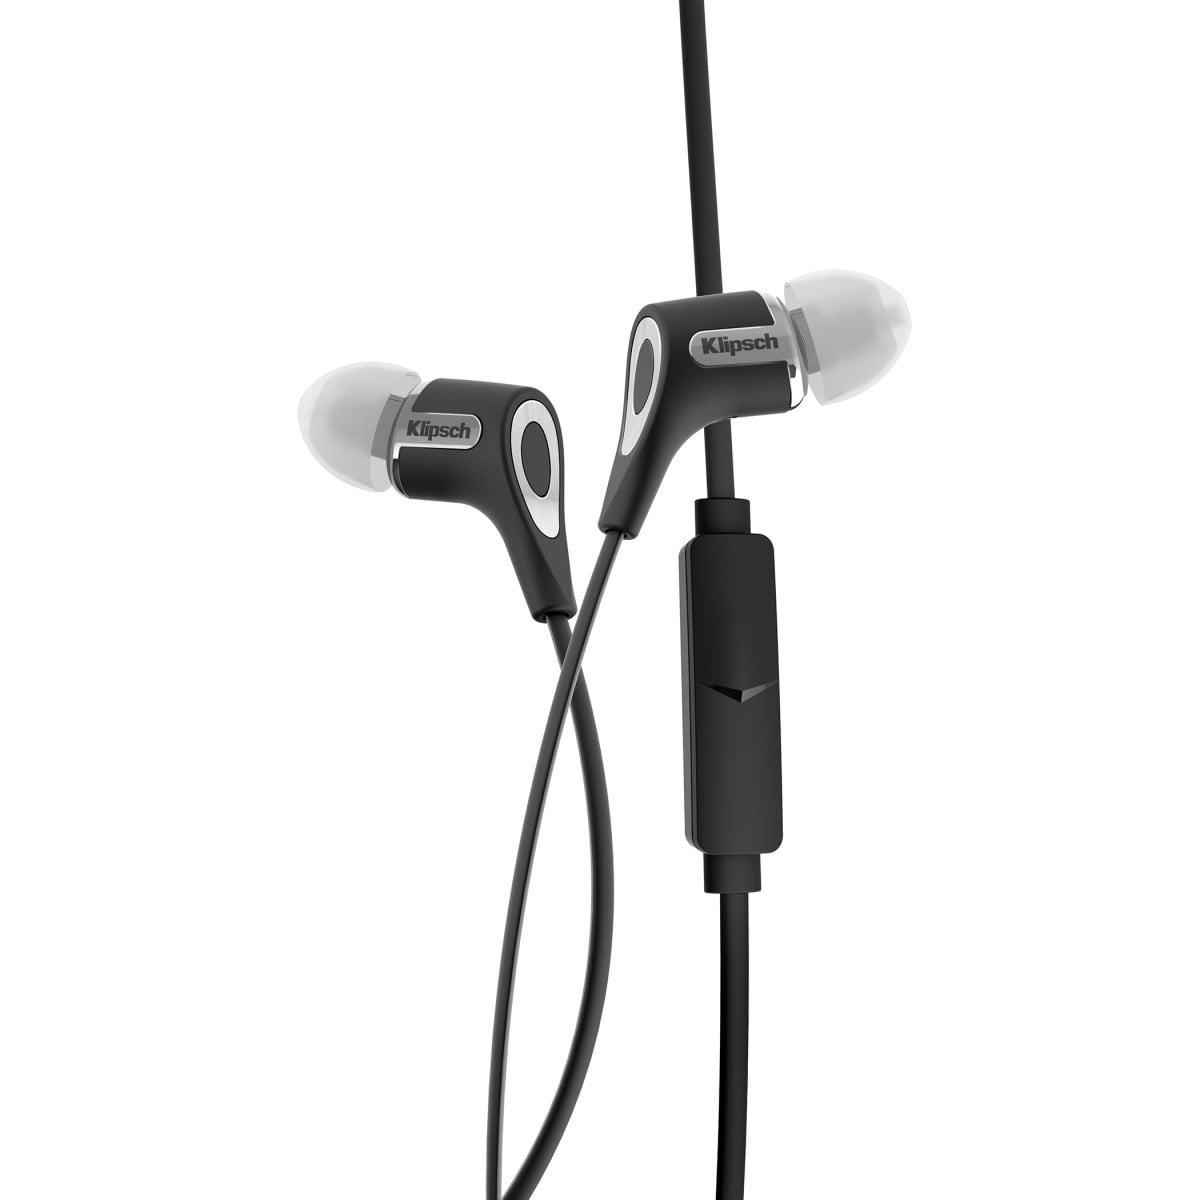 Universal ear hooks for earphones - klipsch Earphones California